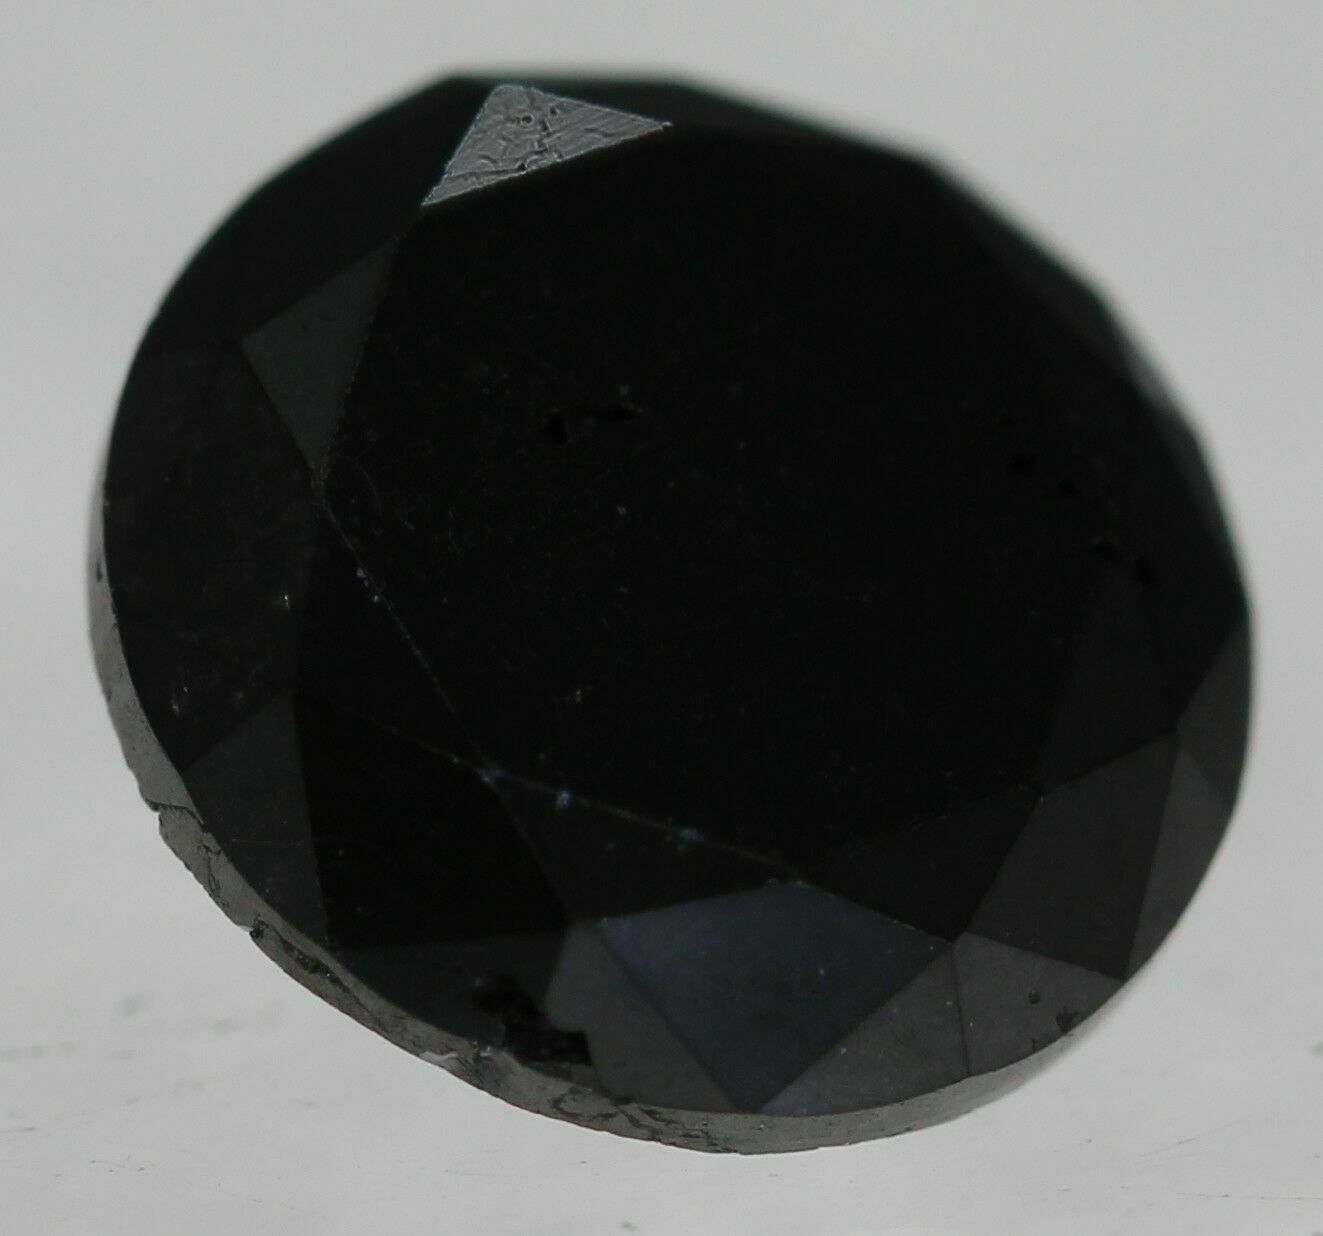 Certified-132-Carat-Fancy-Black-Round-Brilliant-Natural-Diamond-696mm-50-153422604669-4.JPG